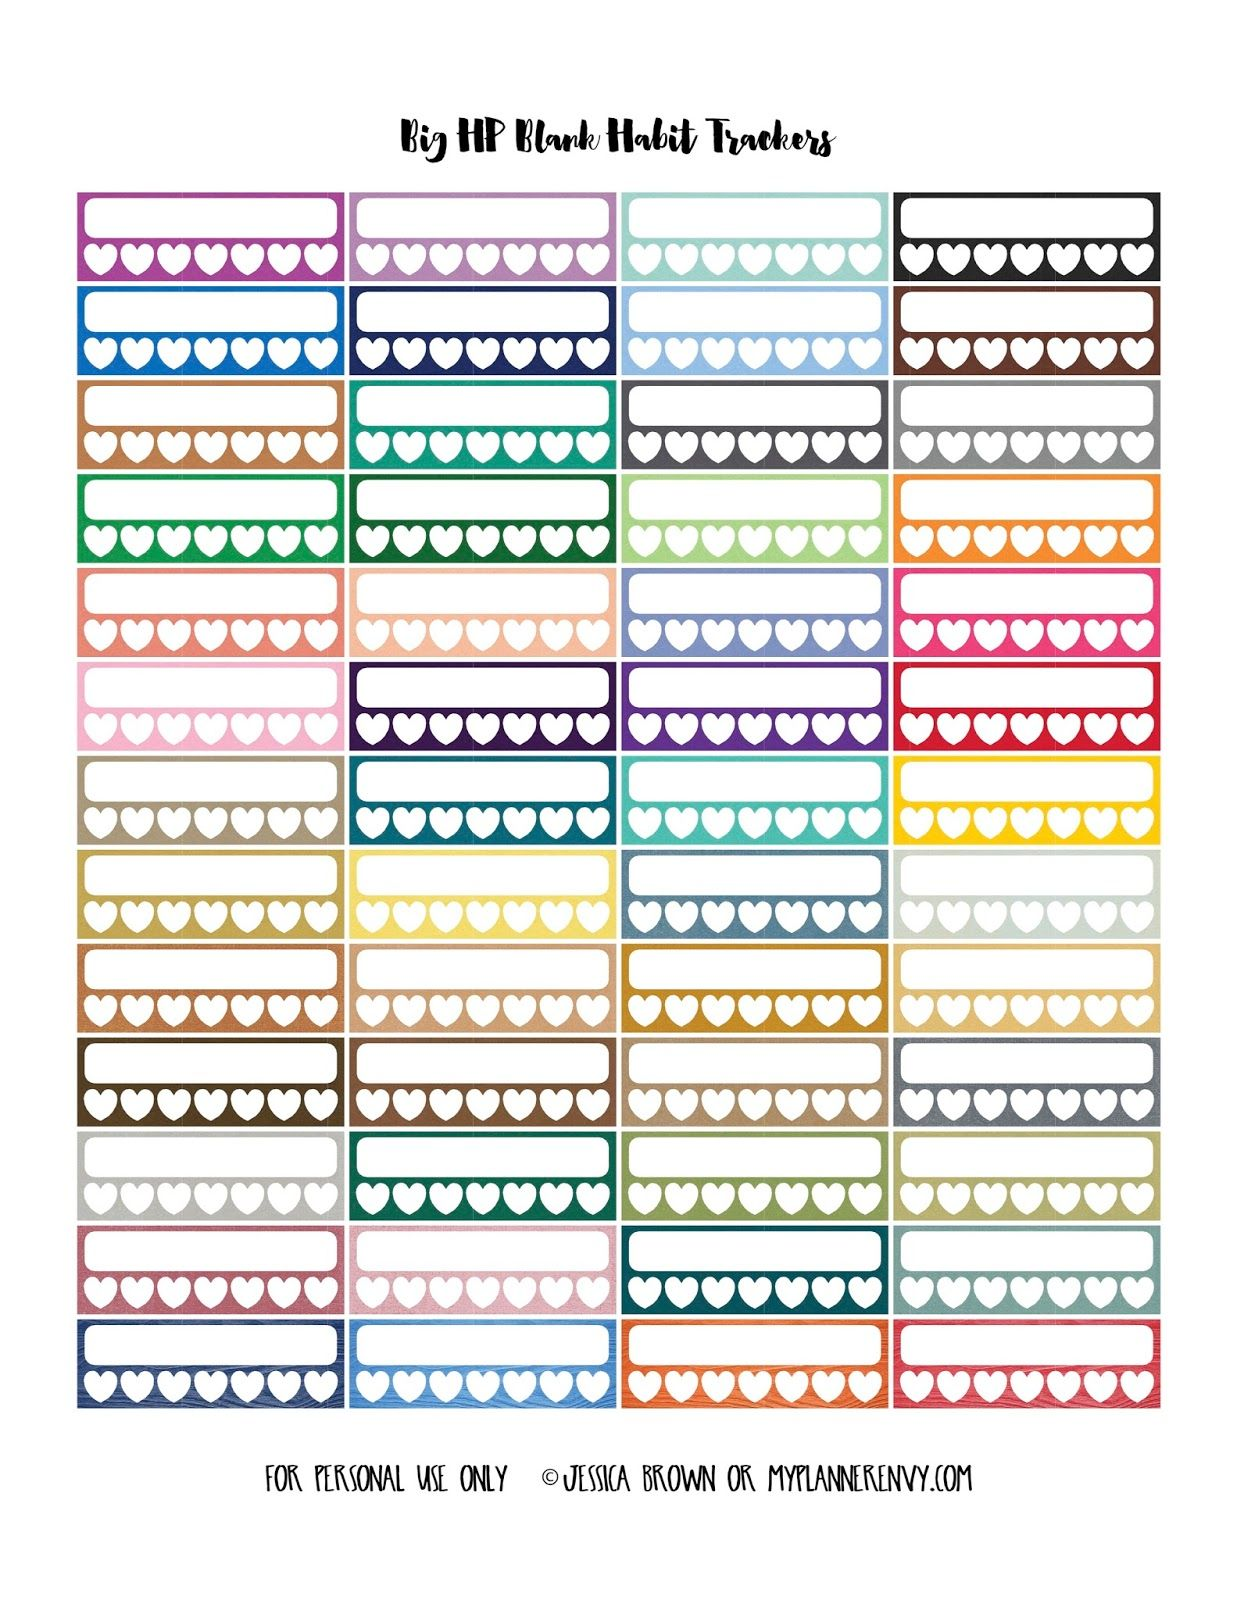 Blank Habit Trackers For The Big Happy Planner From Myplannerenvy